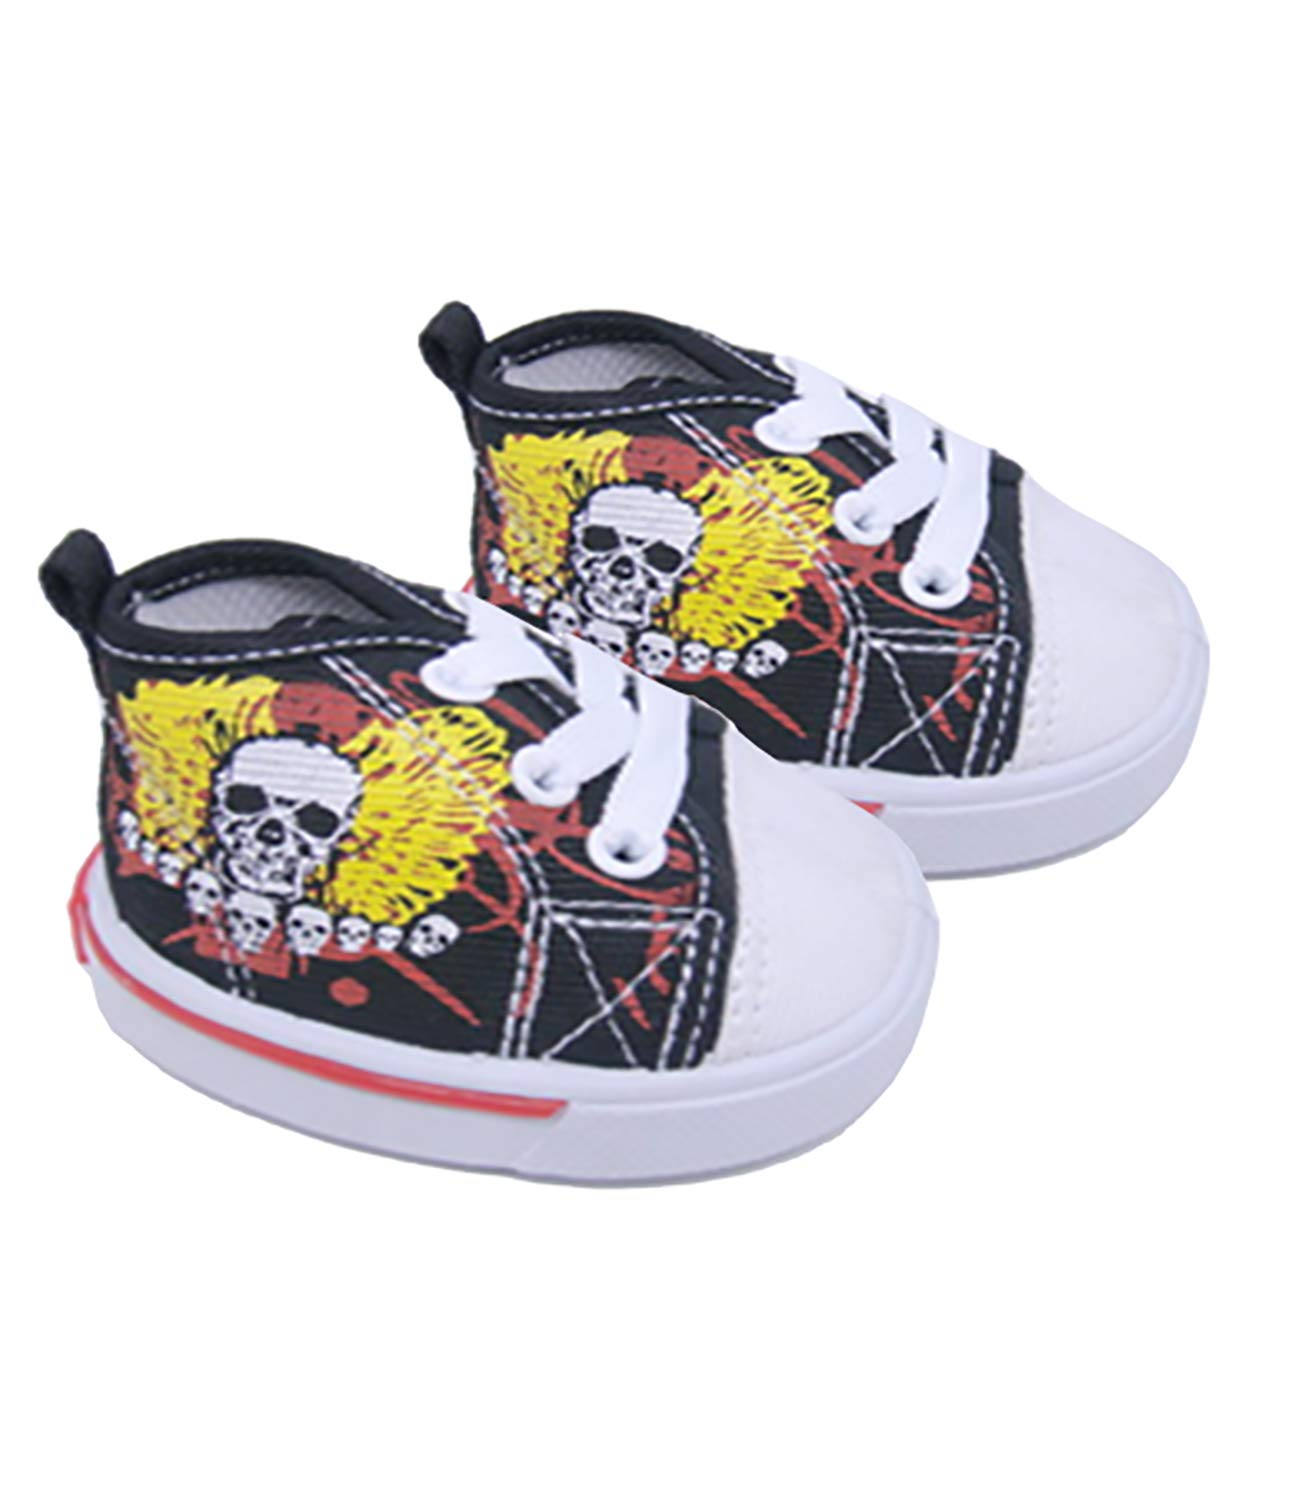 Bad Bear Teddy Bear Shoes Fits Most 14-18 Build-a-bear and Make Your Own Stuffed Animals Vermont Teddy Bears